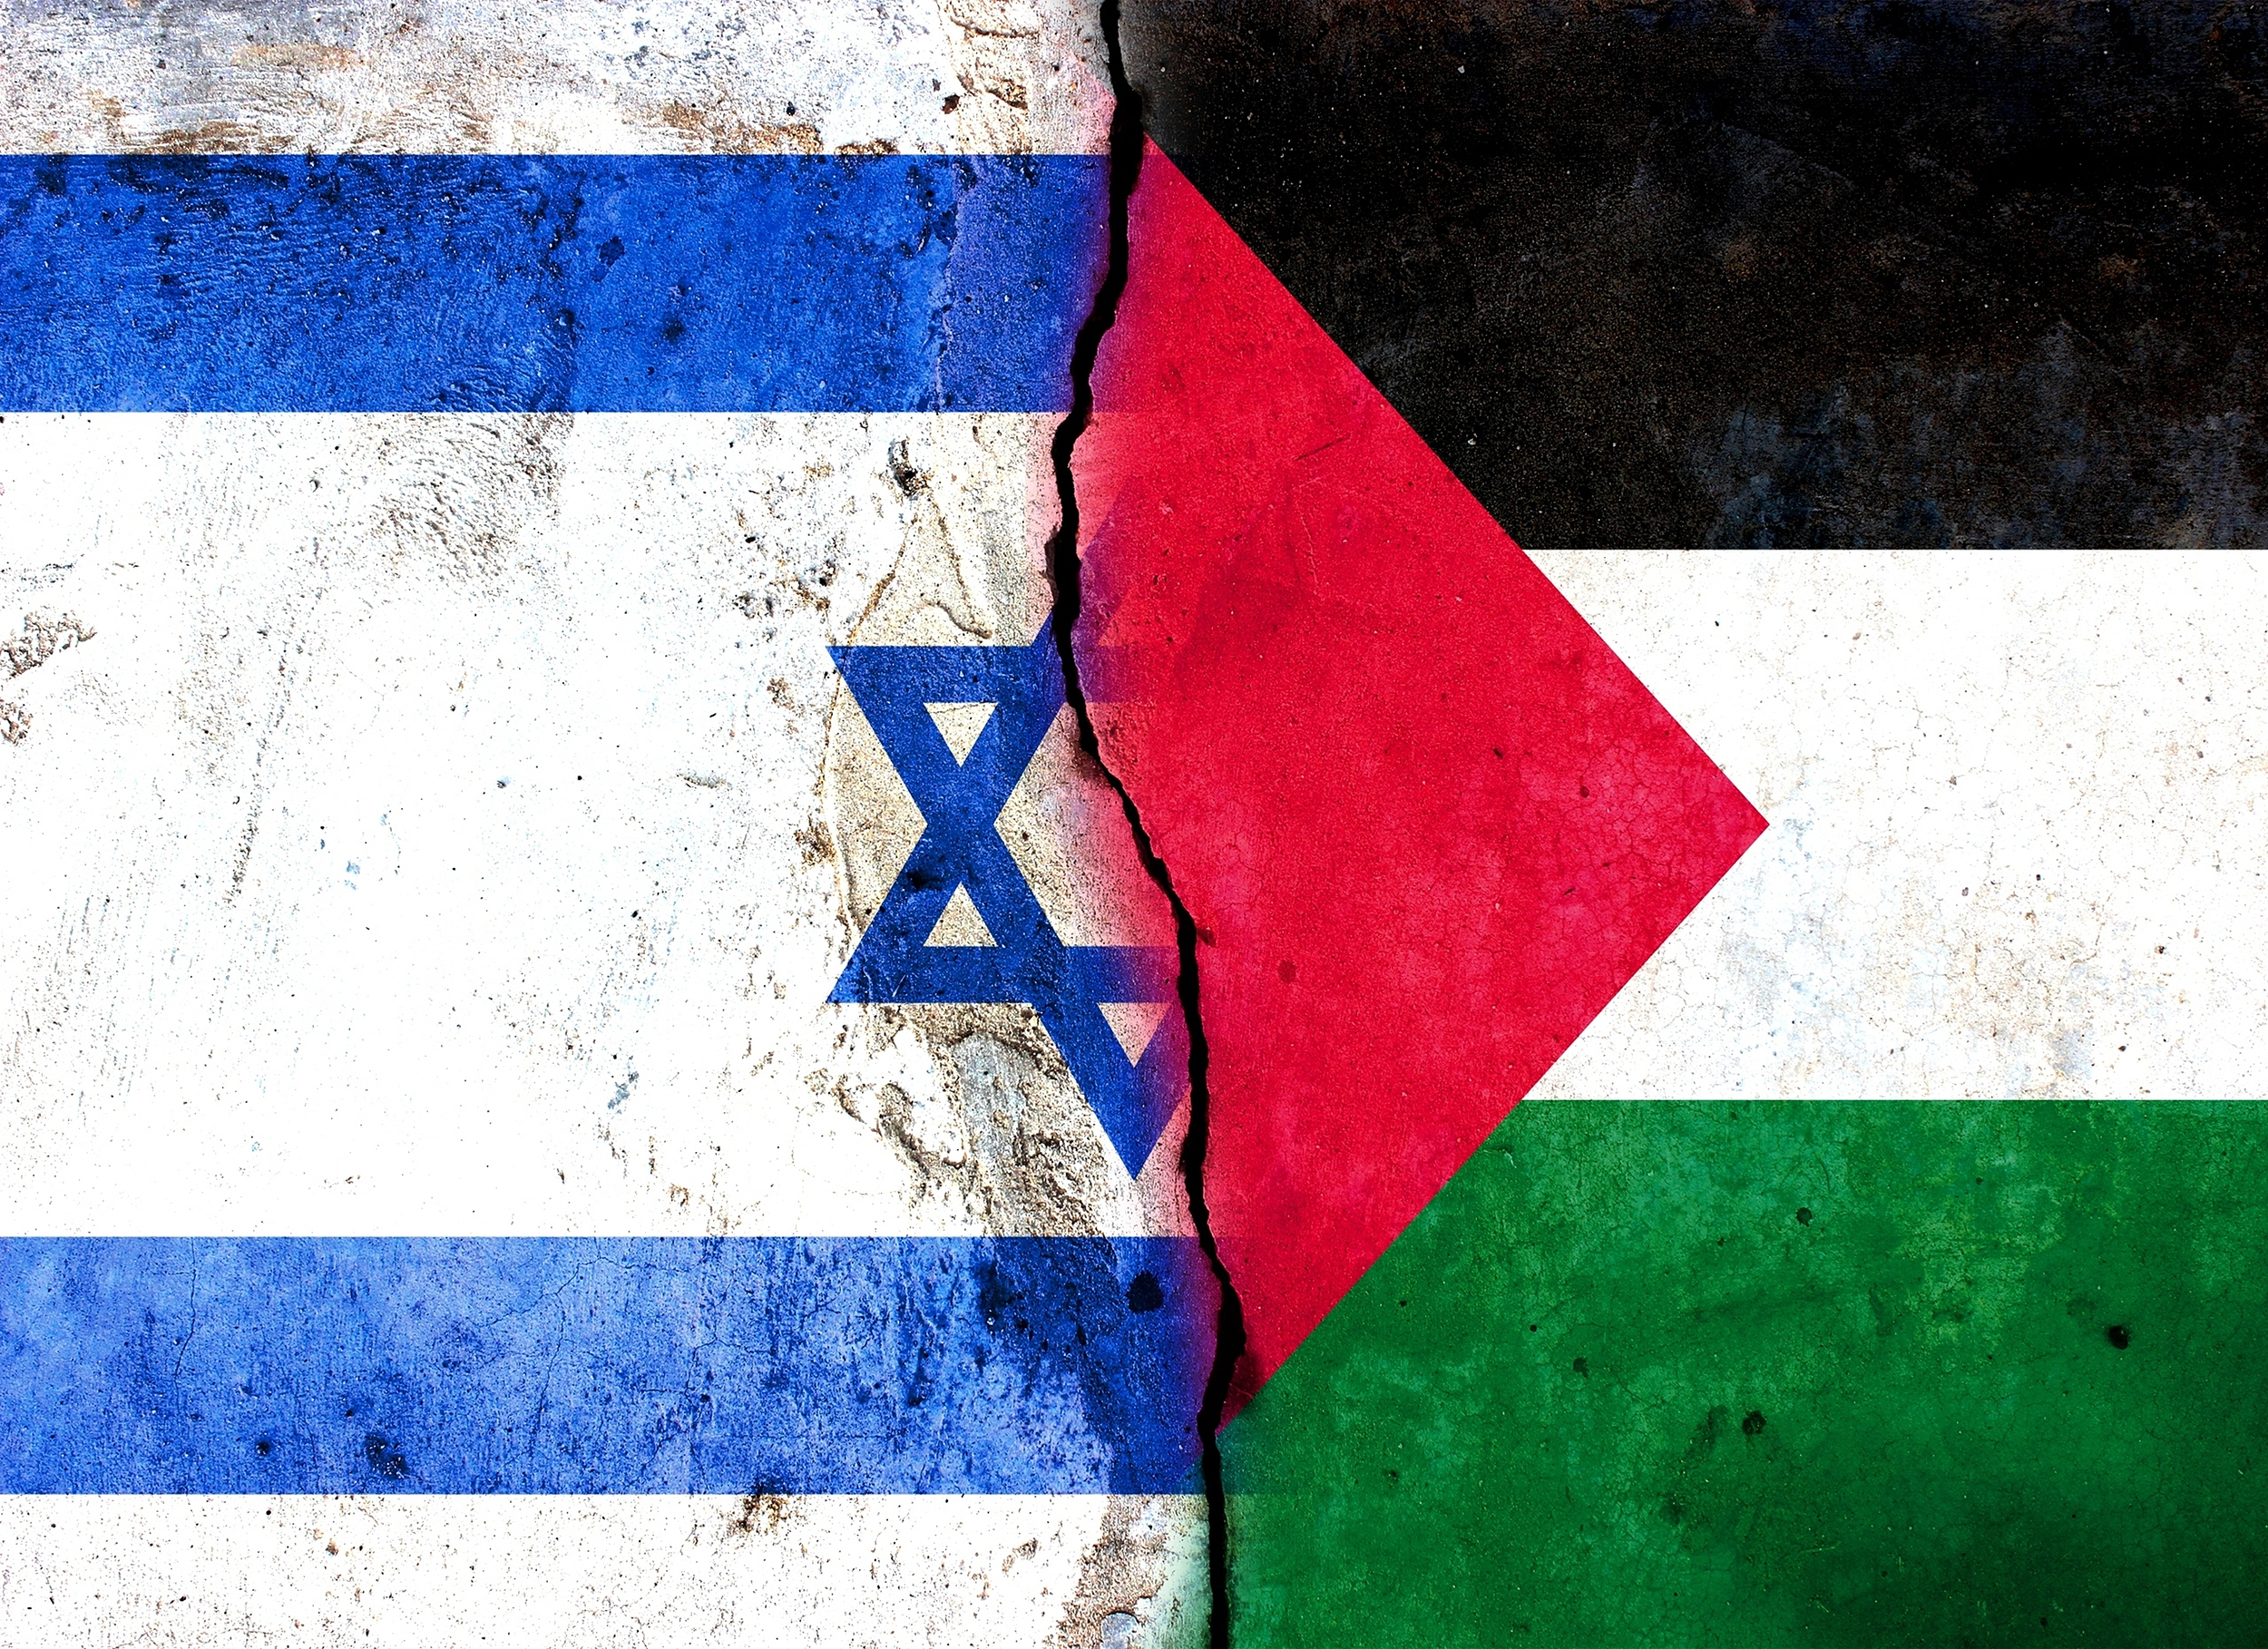 Flags of Palestine and Israel where Bethel has Global Partnership with YWCA of Palestine